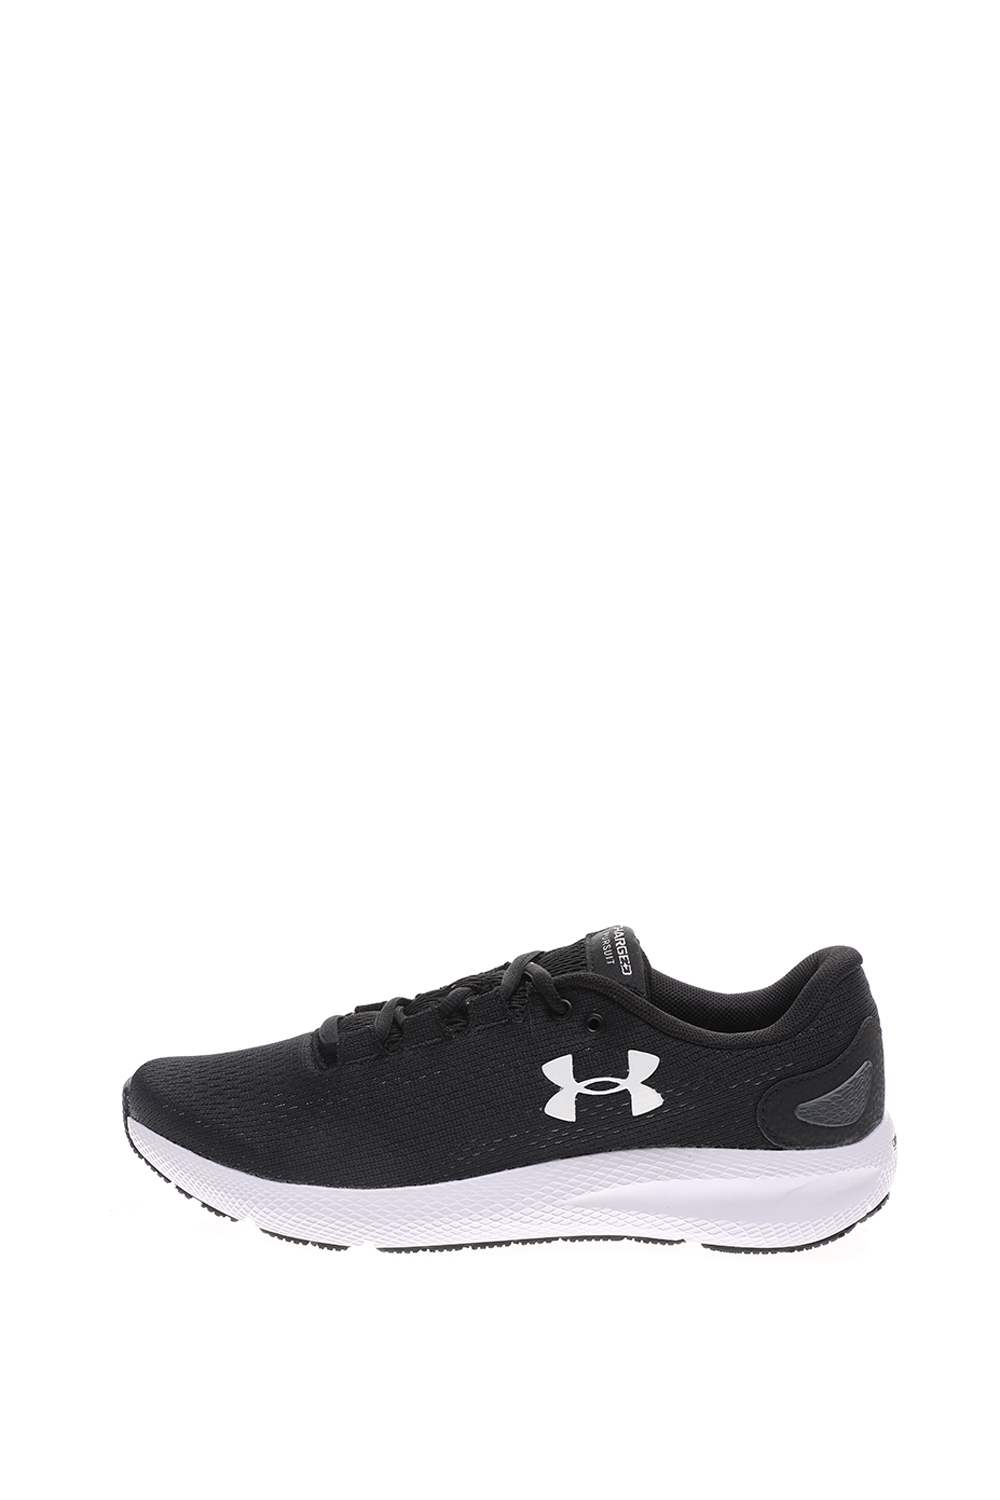 UNDER ARMOUR – Γυναικεία παπούτσια running UNDER ARMOUR W Charged Pursuit 2 μαύρα